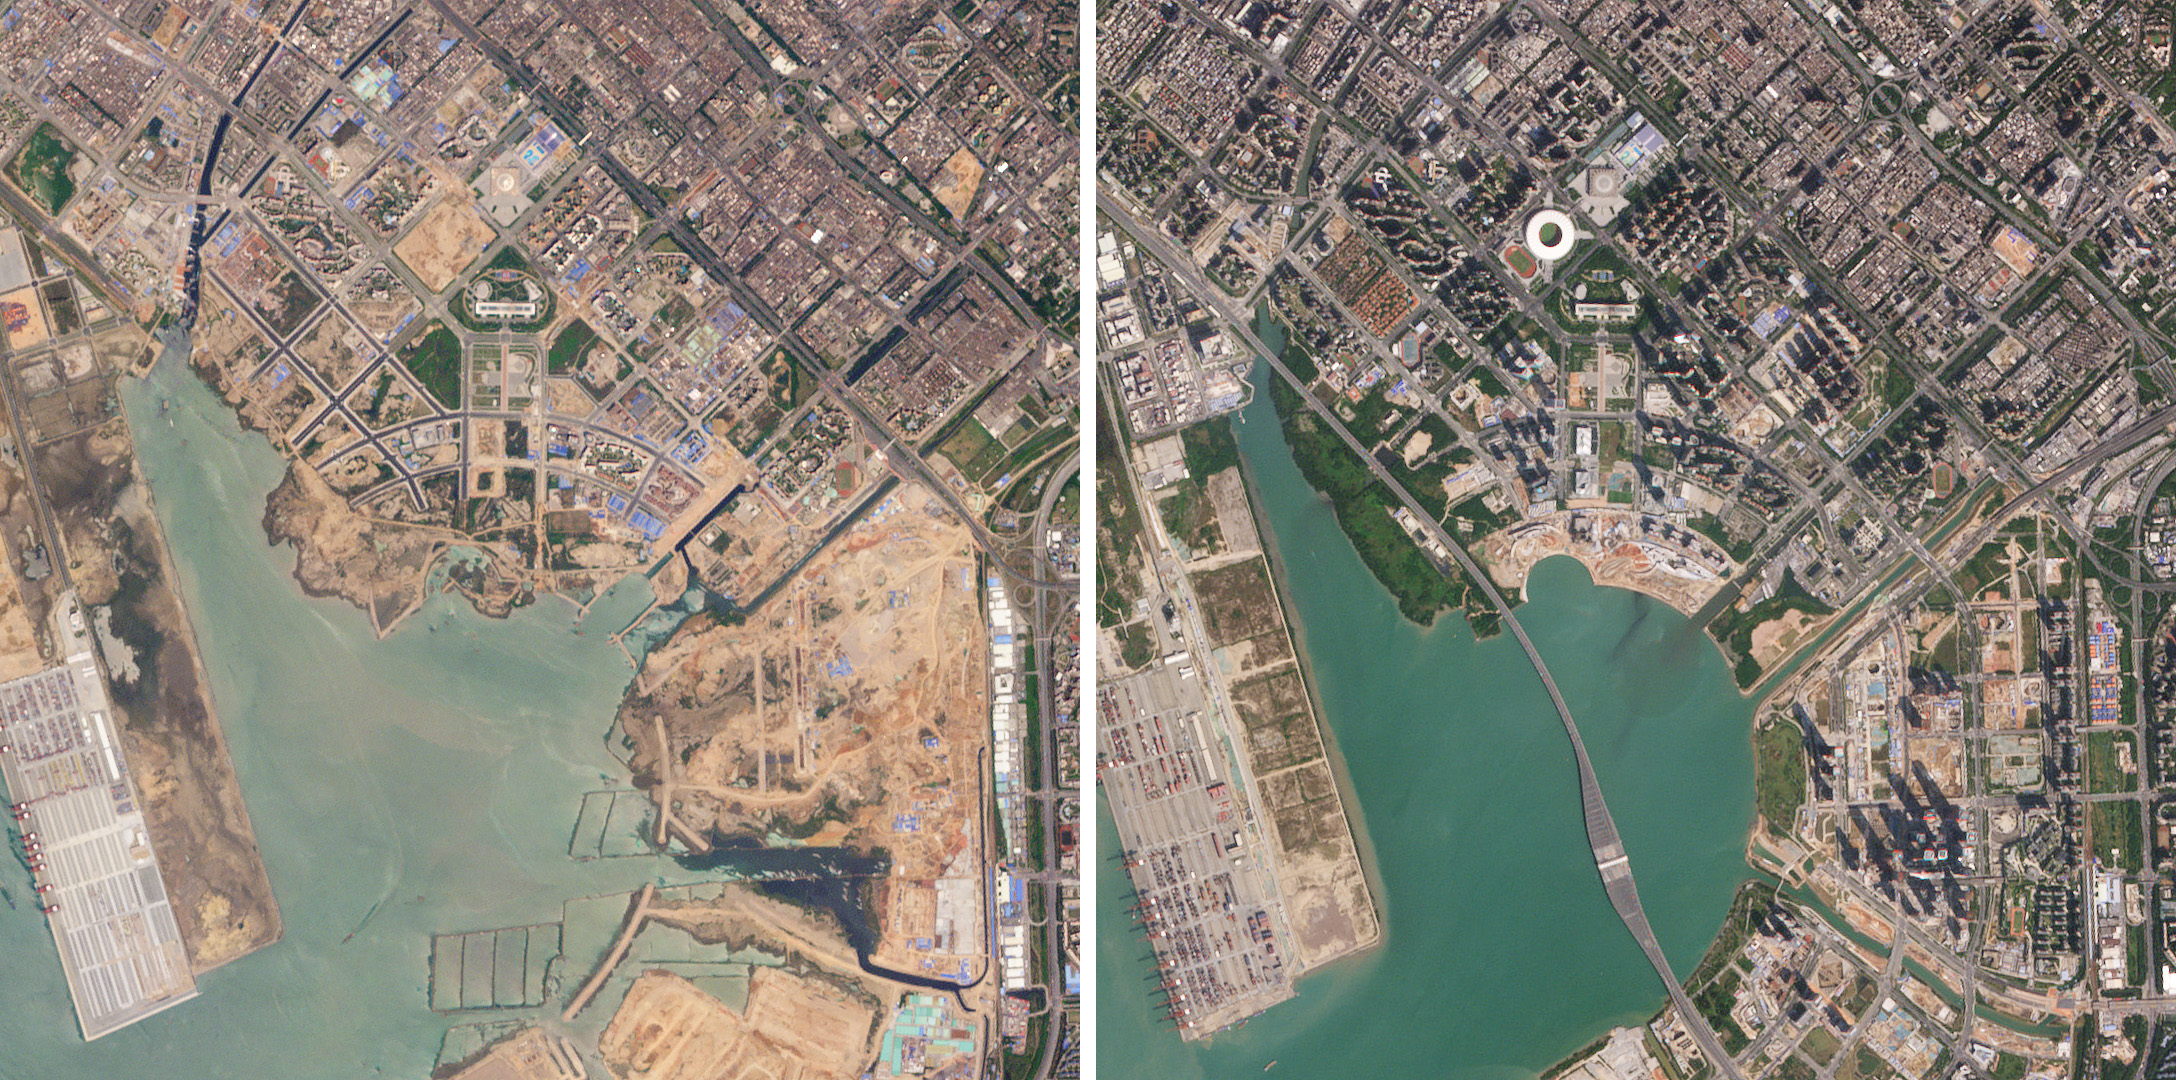 Shenzhen, in China's Pearl River Delta, grew tremendously during the life of the RapidEye constellation. This image pair, from May 1, 2009 and November 5, 2019, shows the transformation of the area around Qianhai Bay. (c) 2019, Planet Labs Inc. All Rights Reserved.